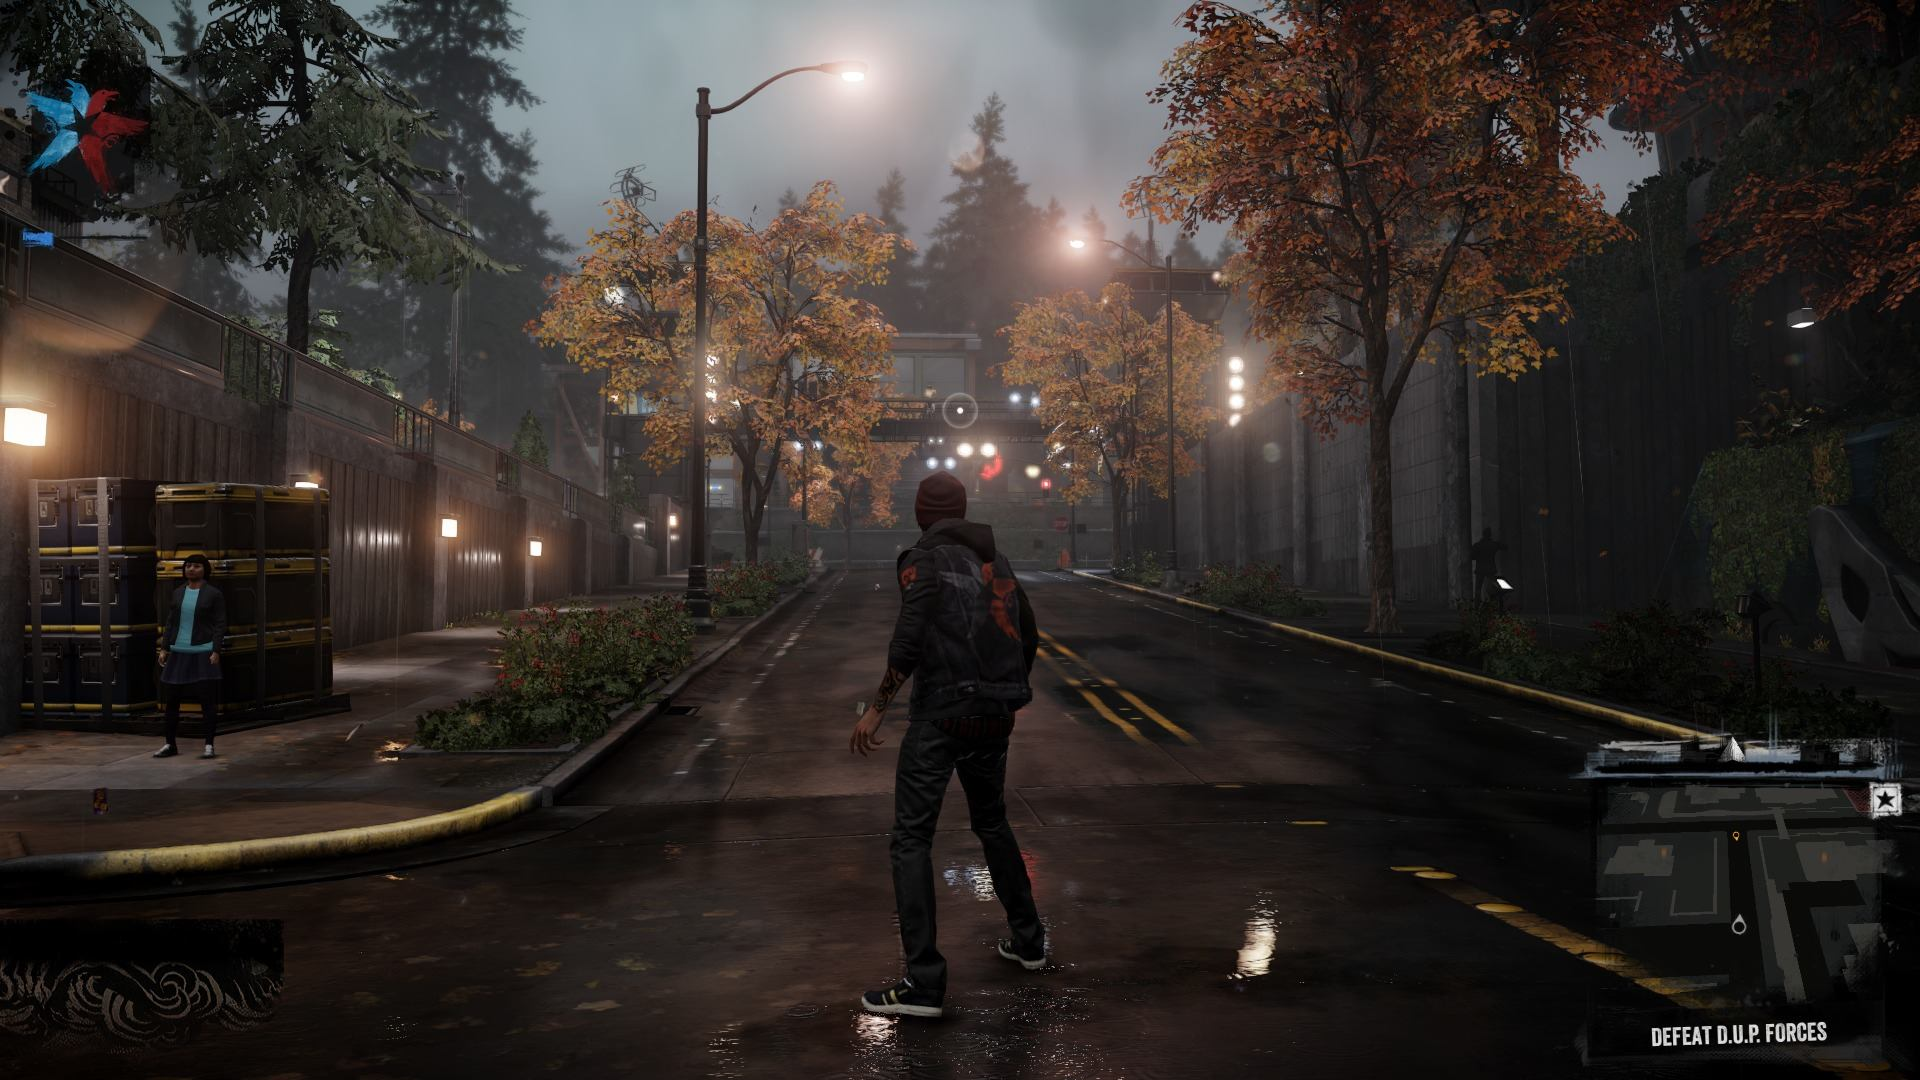 Infamous second son review leaked celebrity